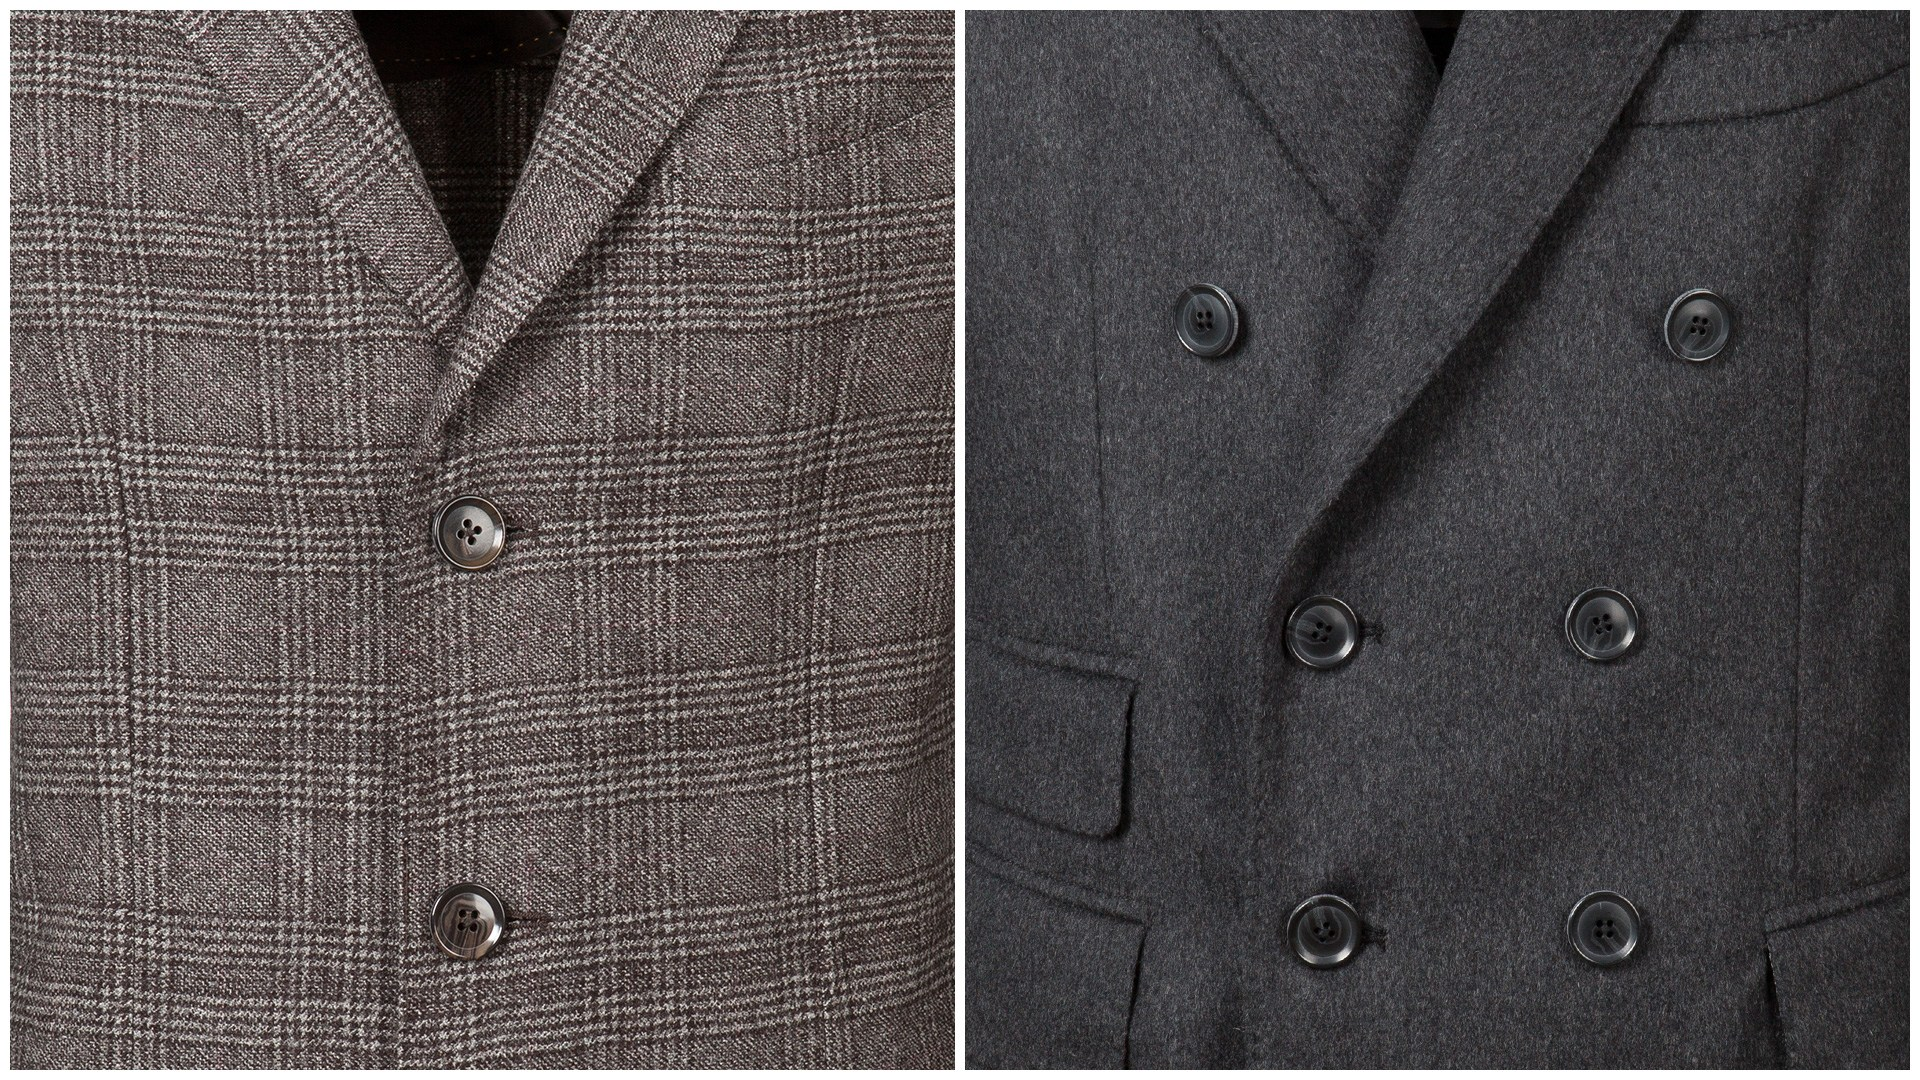 How to choose a men's overcoat for winter: everything you need to know